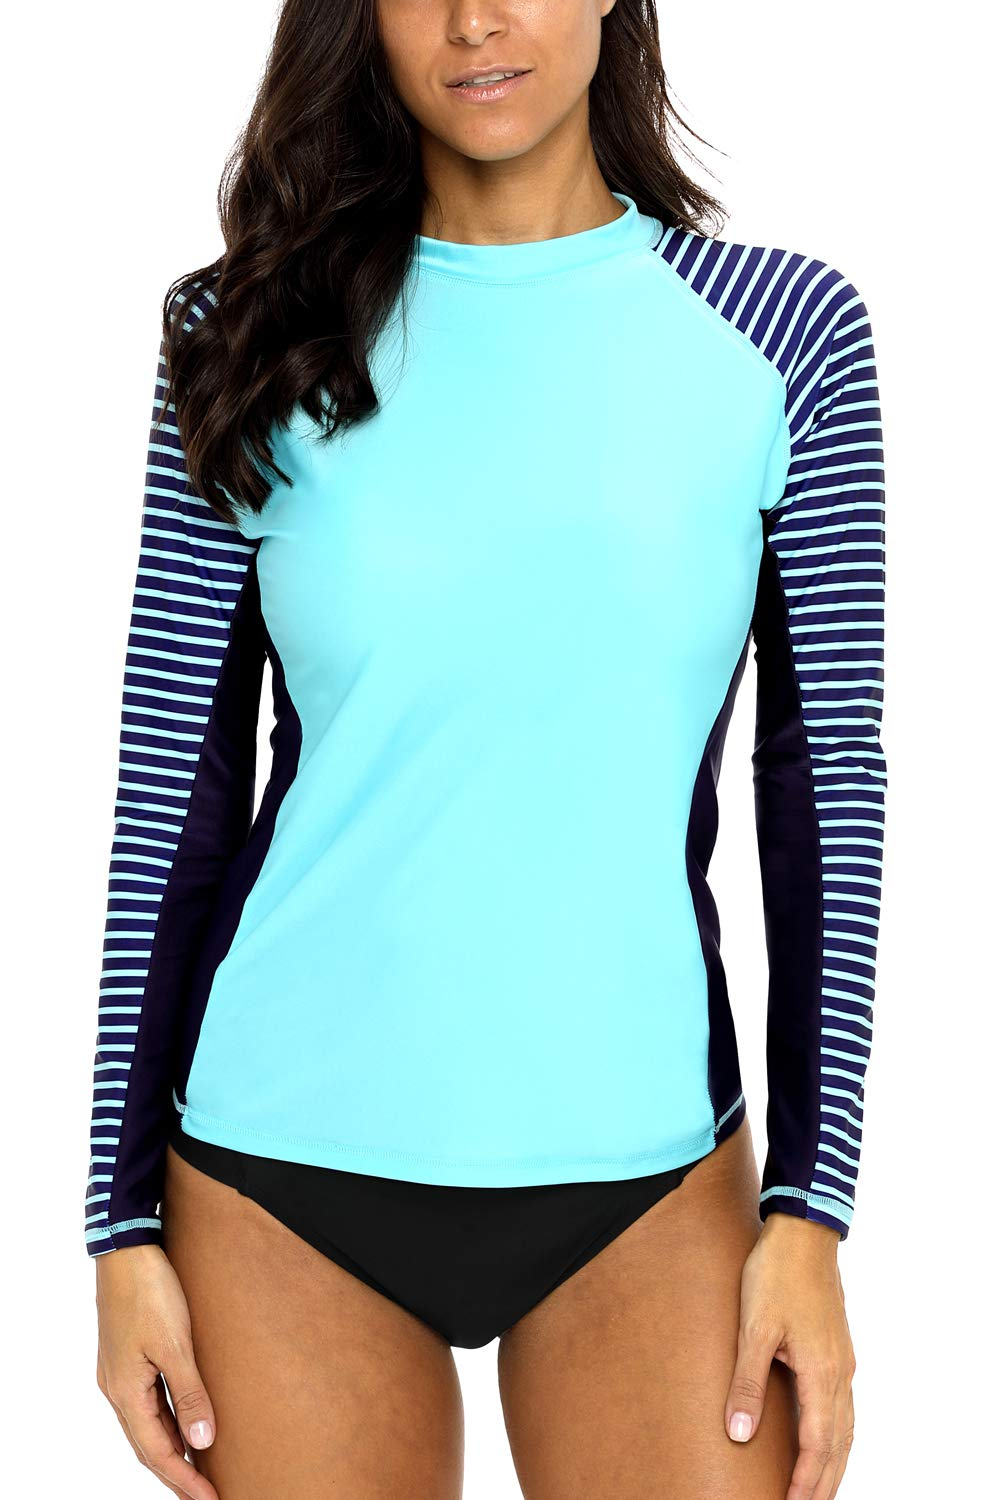 d18aeba3e CharmLeaks Women Rash Guard Long Sleeve Swim Shirts Striped UV Swimsuit Tops